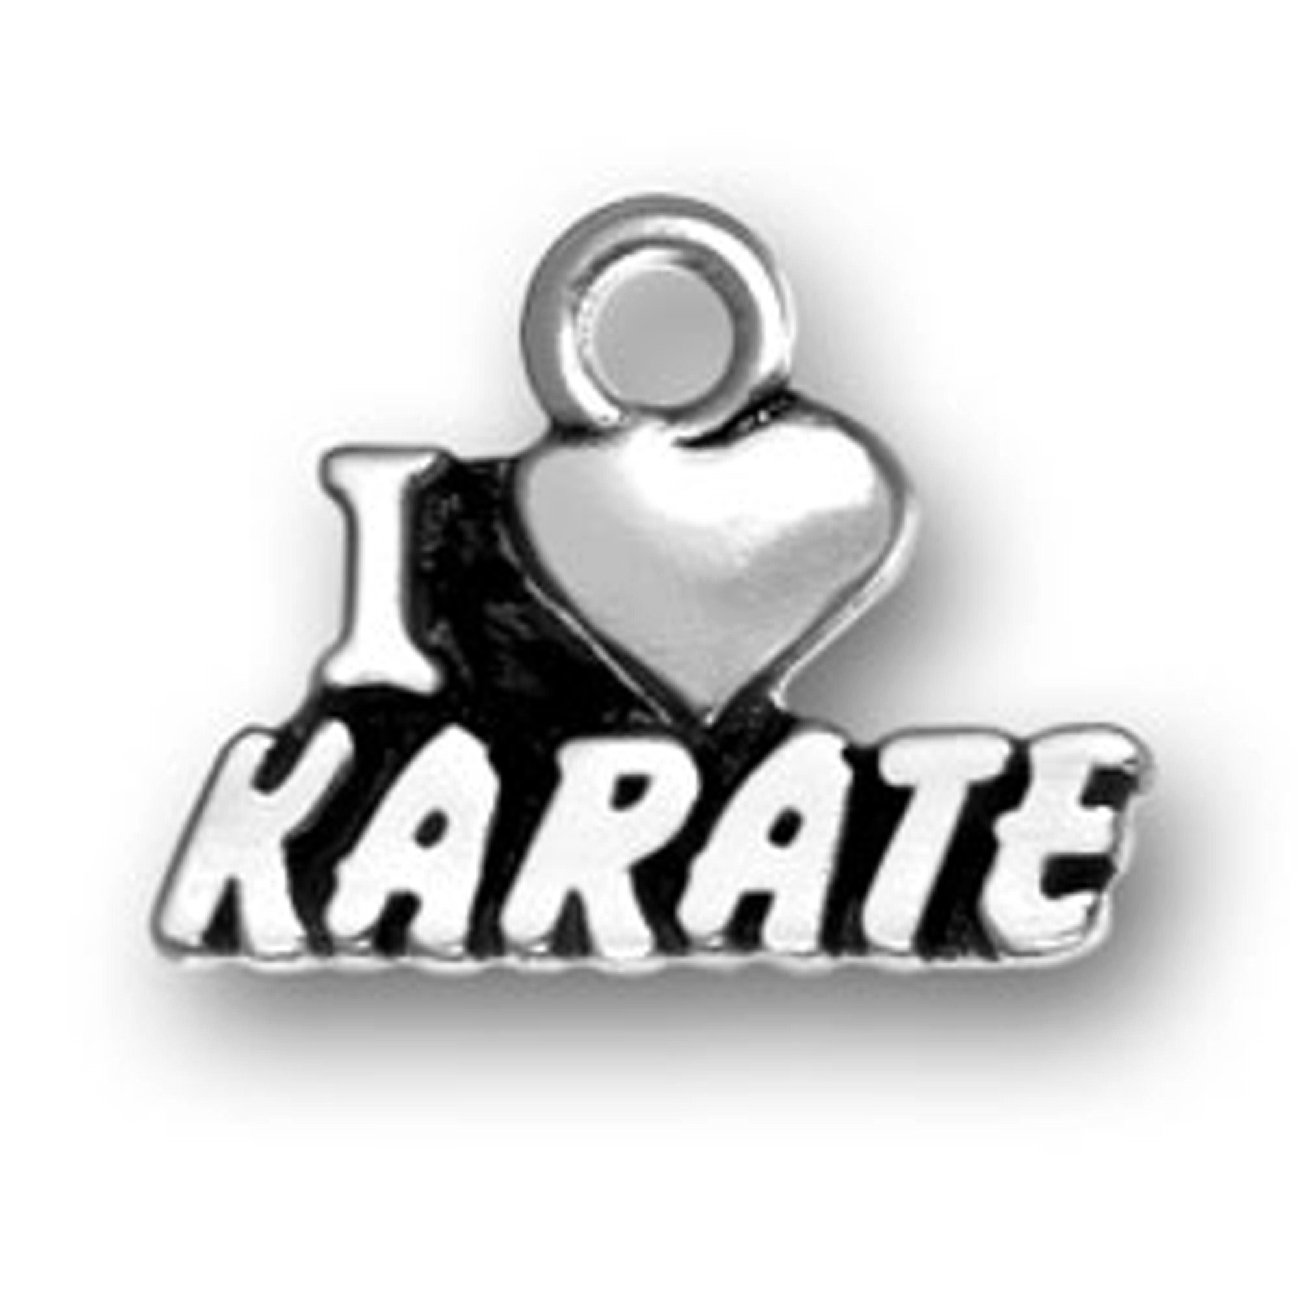 Sterling Silver 7 4.5mm Charm Bracelet With Attached I LOVE KARATE Sports Word Charm